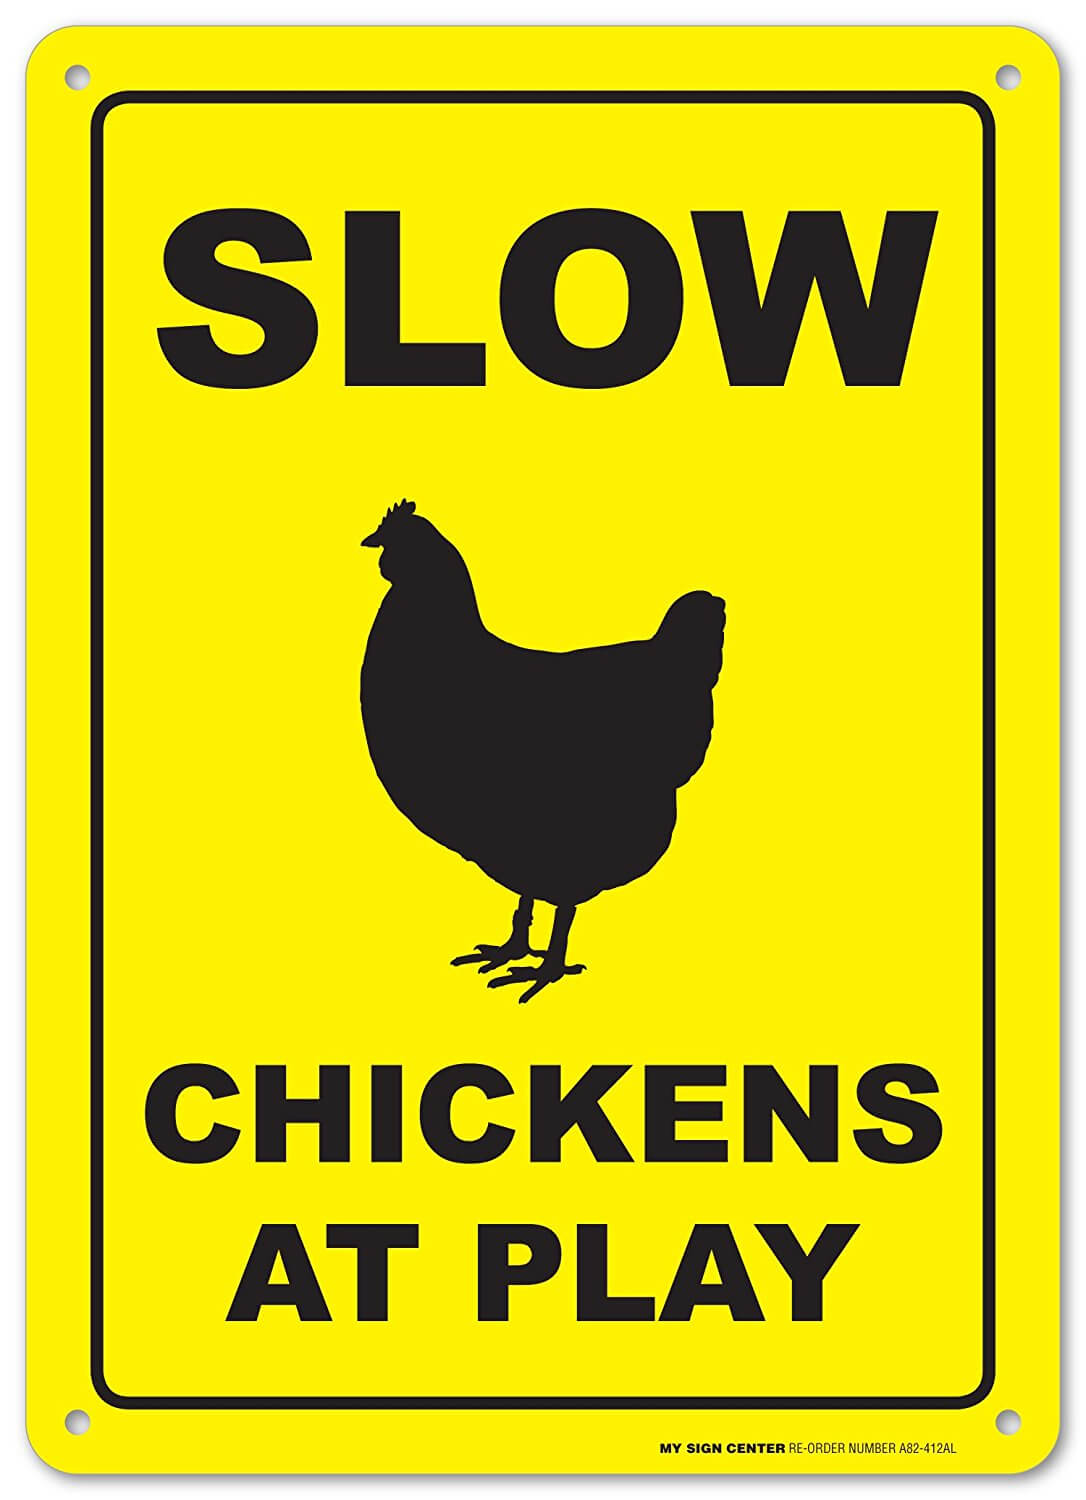 chickens at play sign